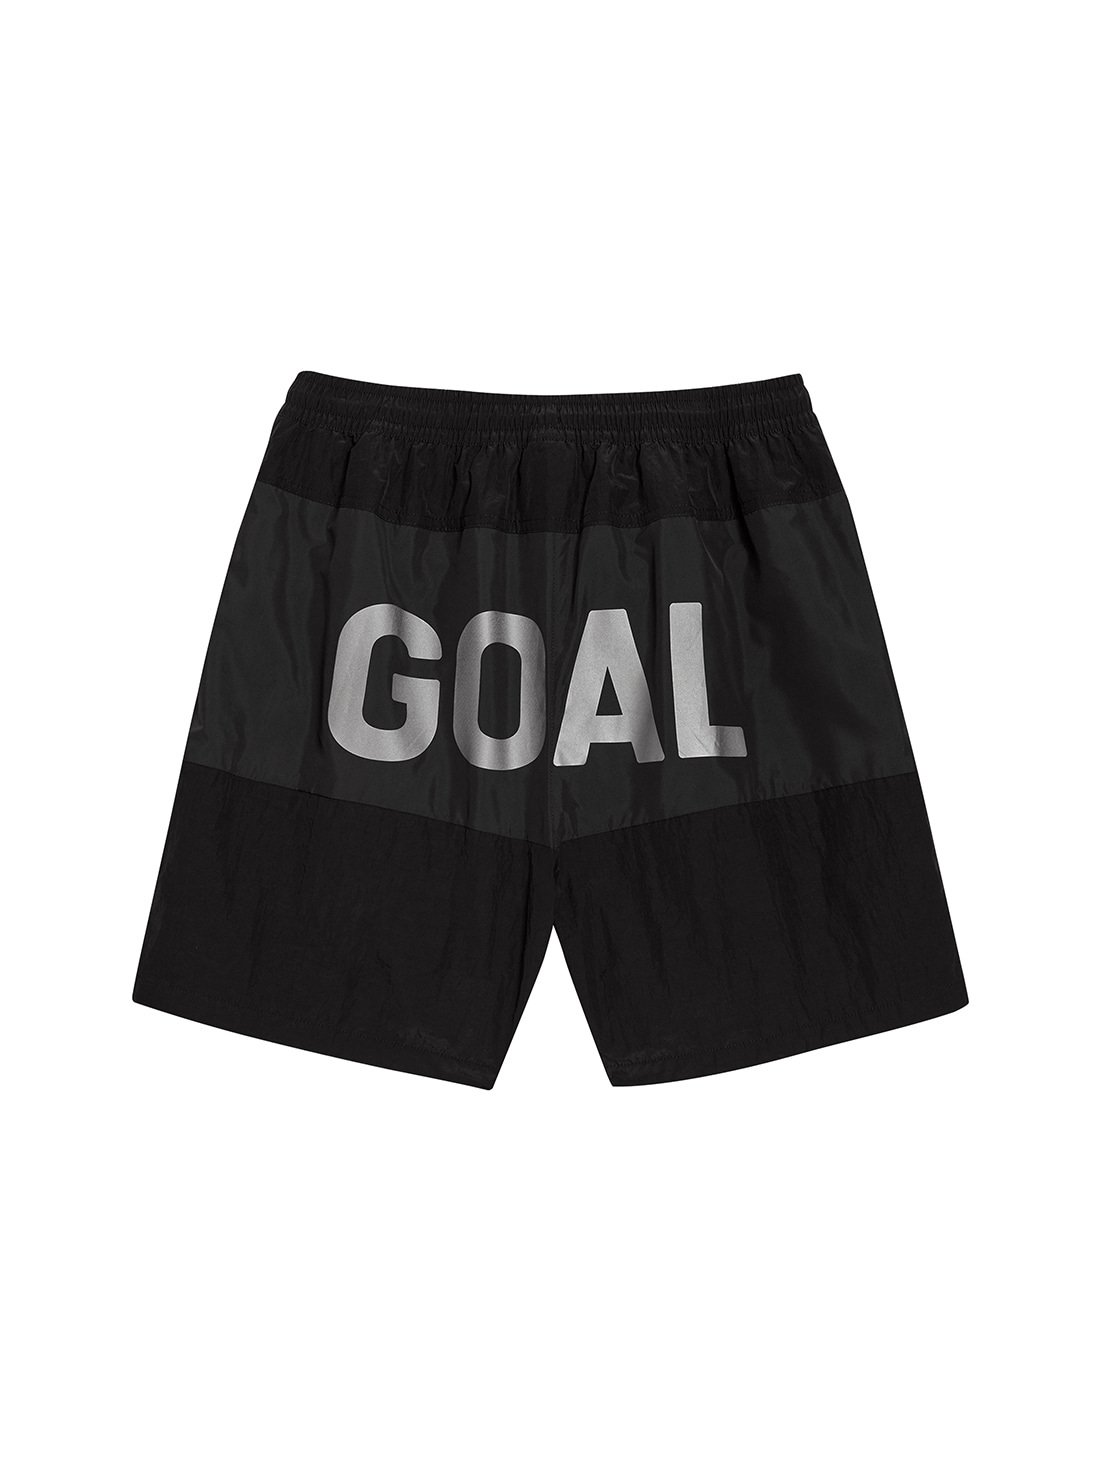 GOAL,GOALSTUDIO,FASHION,MENSWEAR,SPORT,GOAL,FOOTBOALL,SPORTWEAR,SHOPPING,PANTS